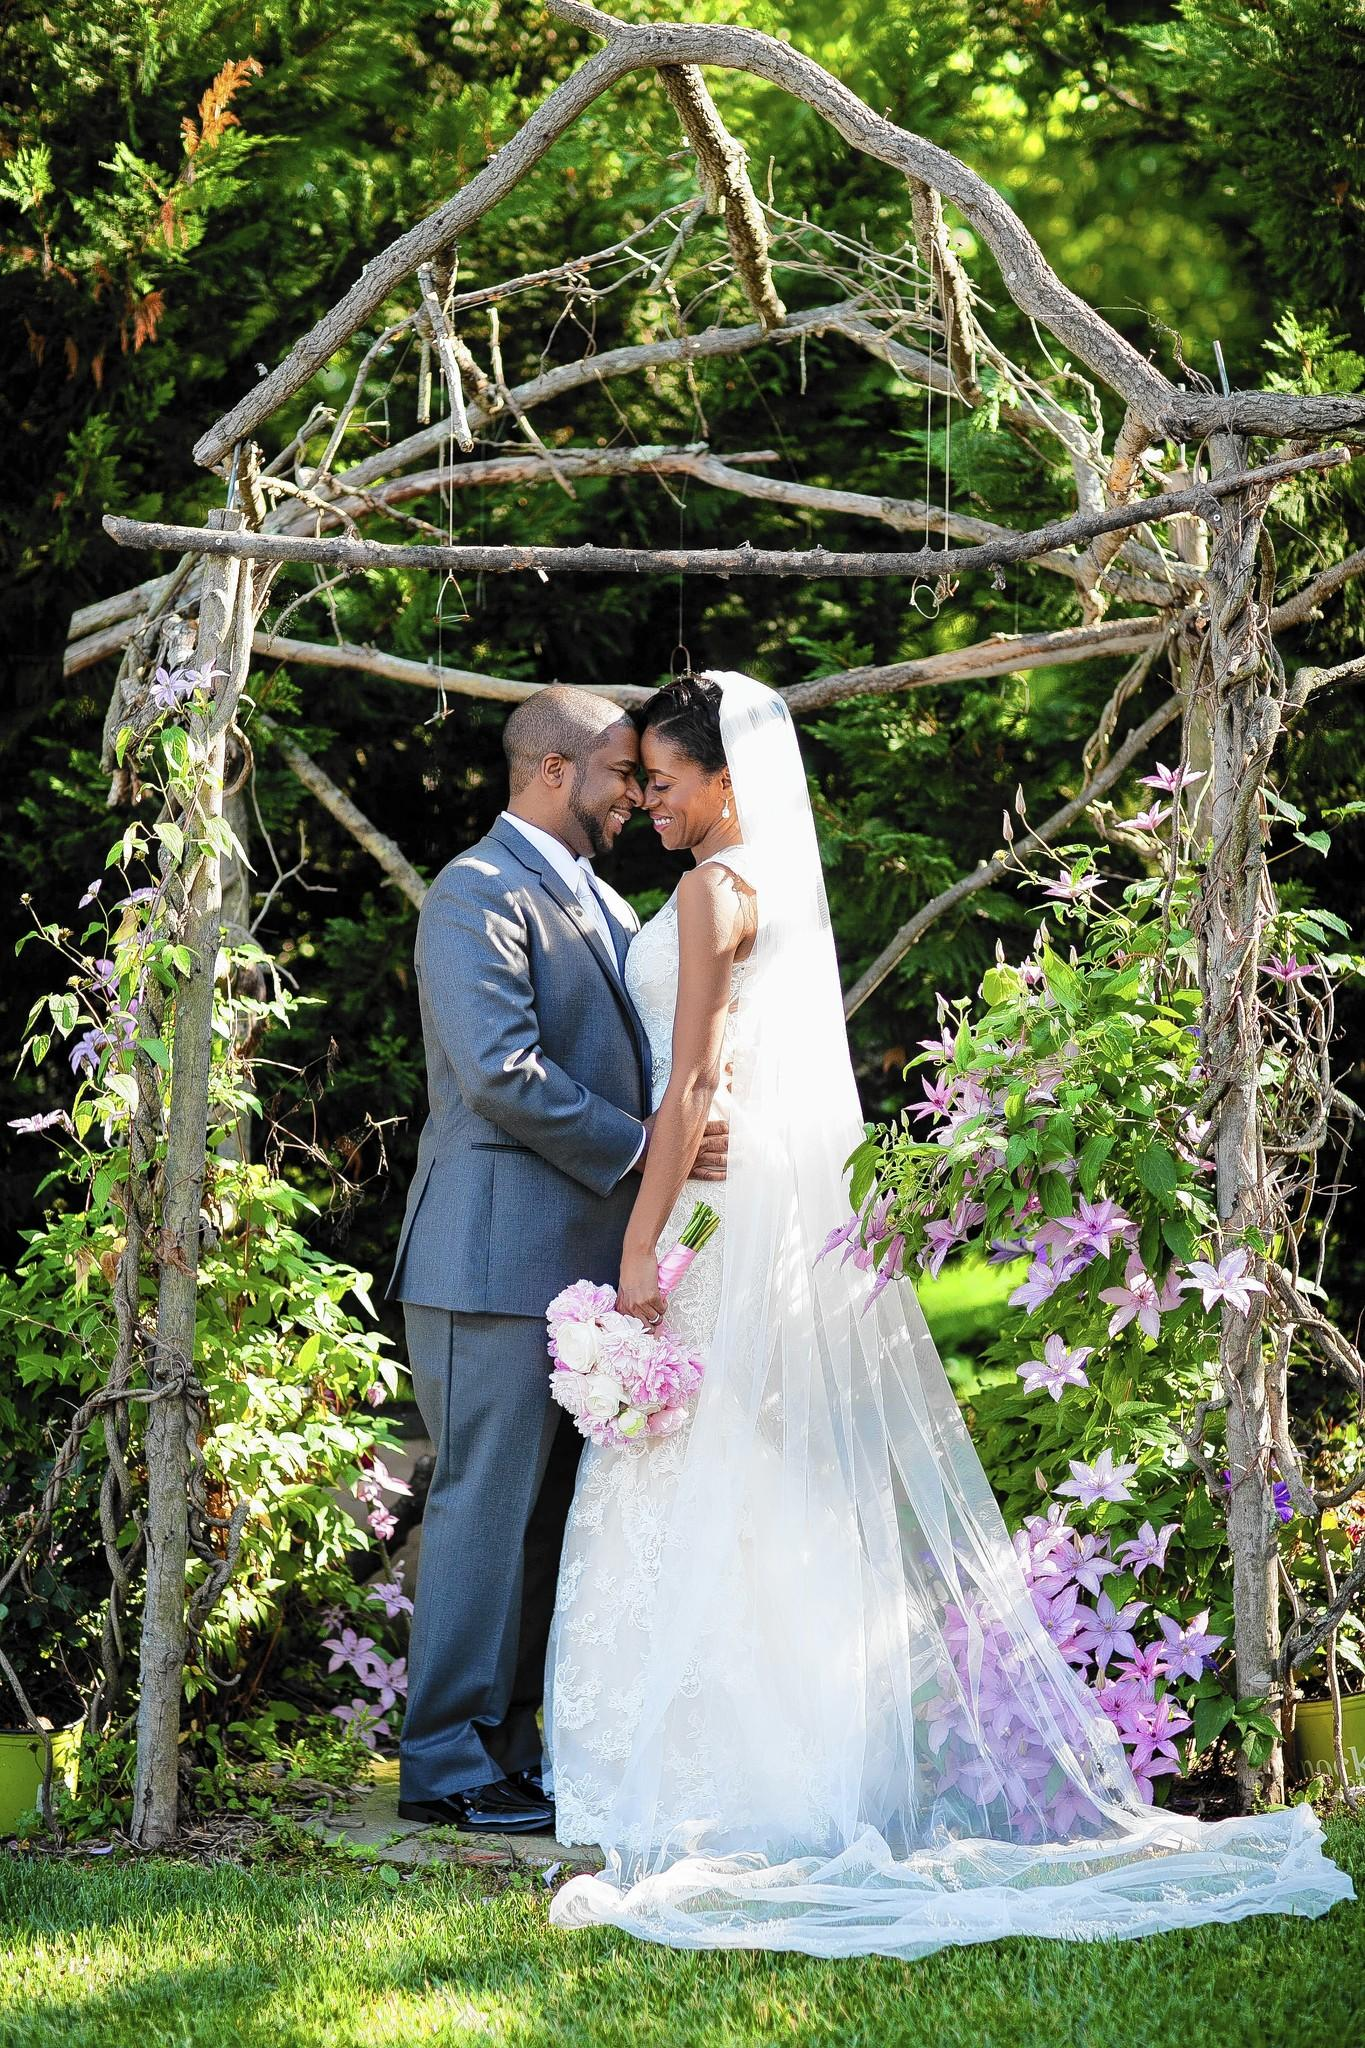 Jannette Merritt and Michael Phillips started talking on the phone a year after they first met in New York City.